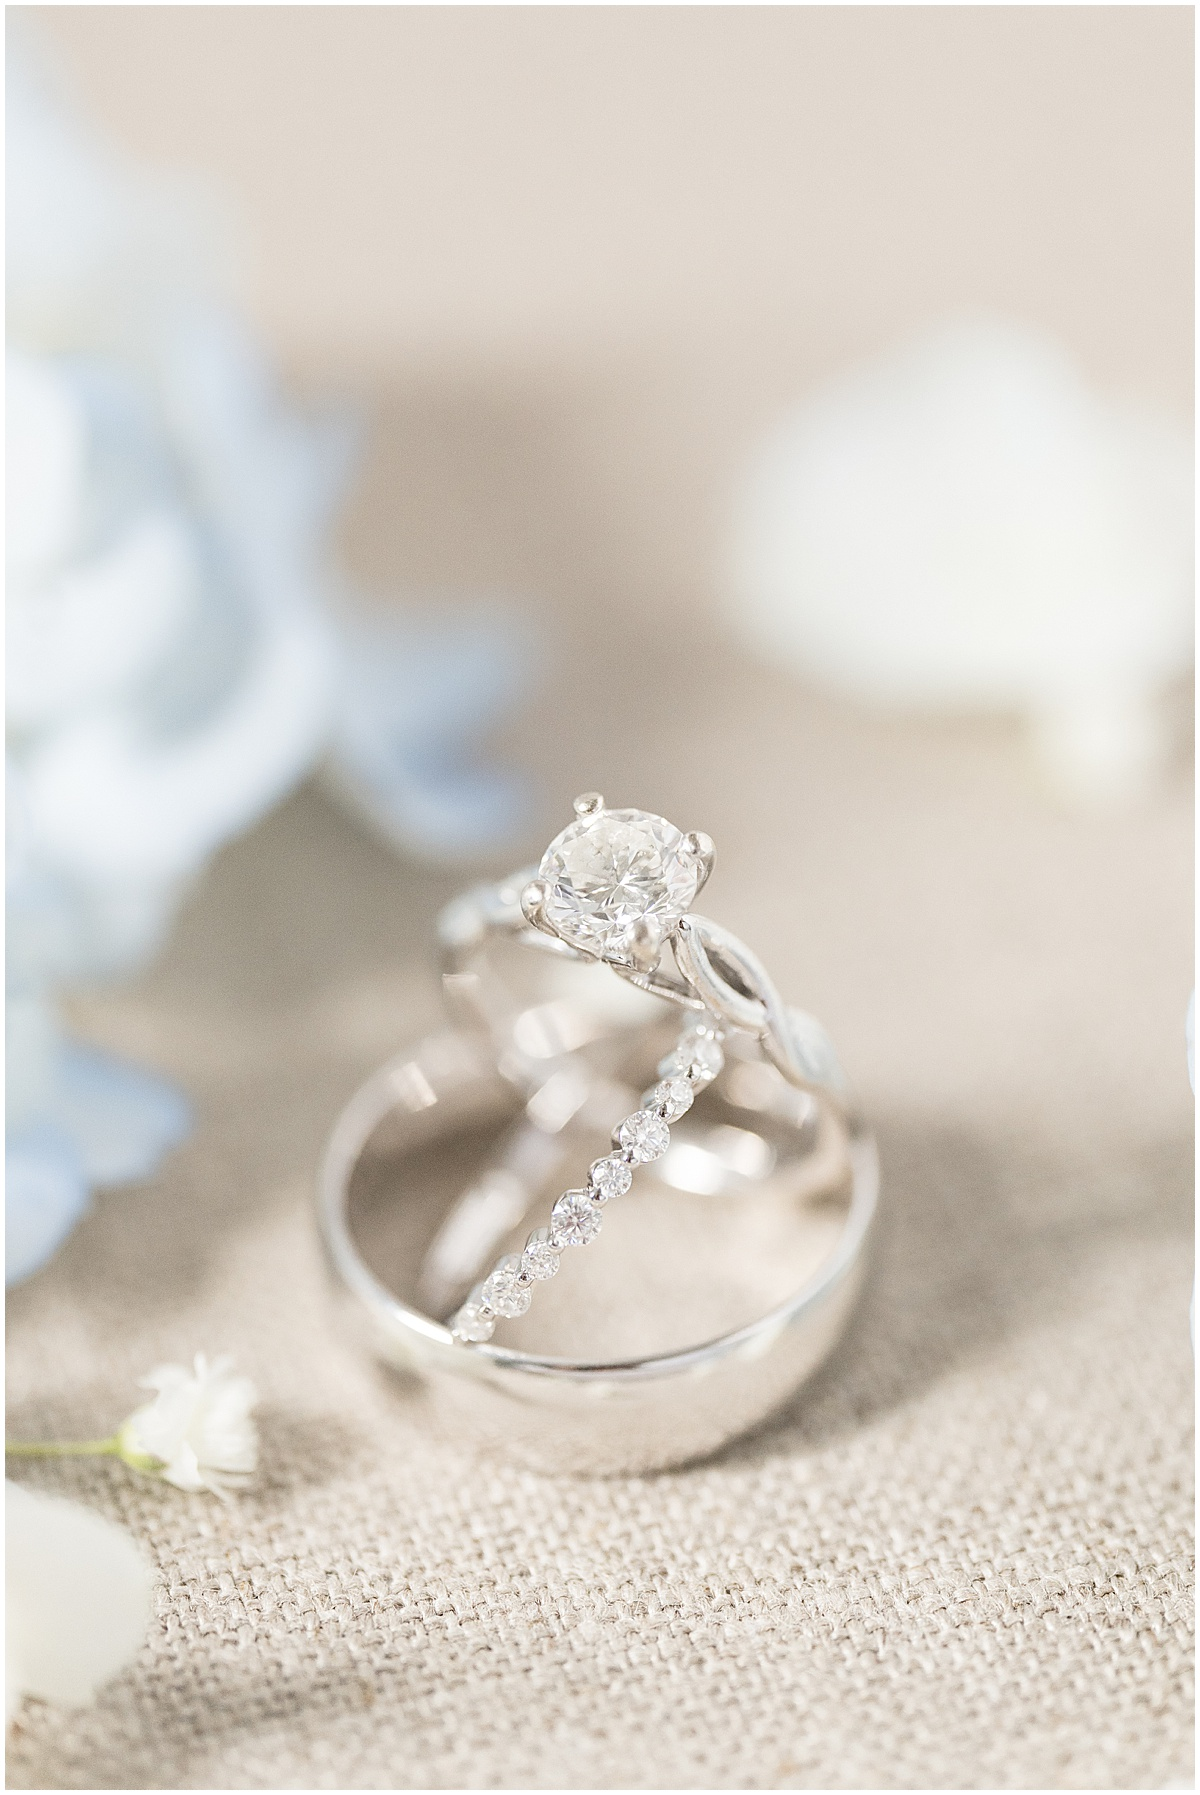 Ring detail photo at Hawk Point Acres Wedding in Anderson, Indiana